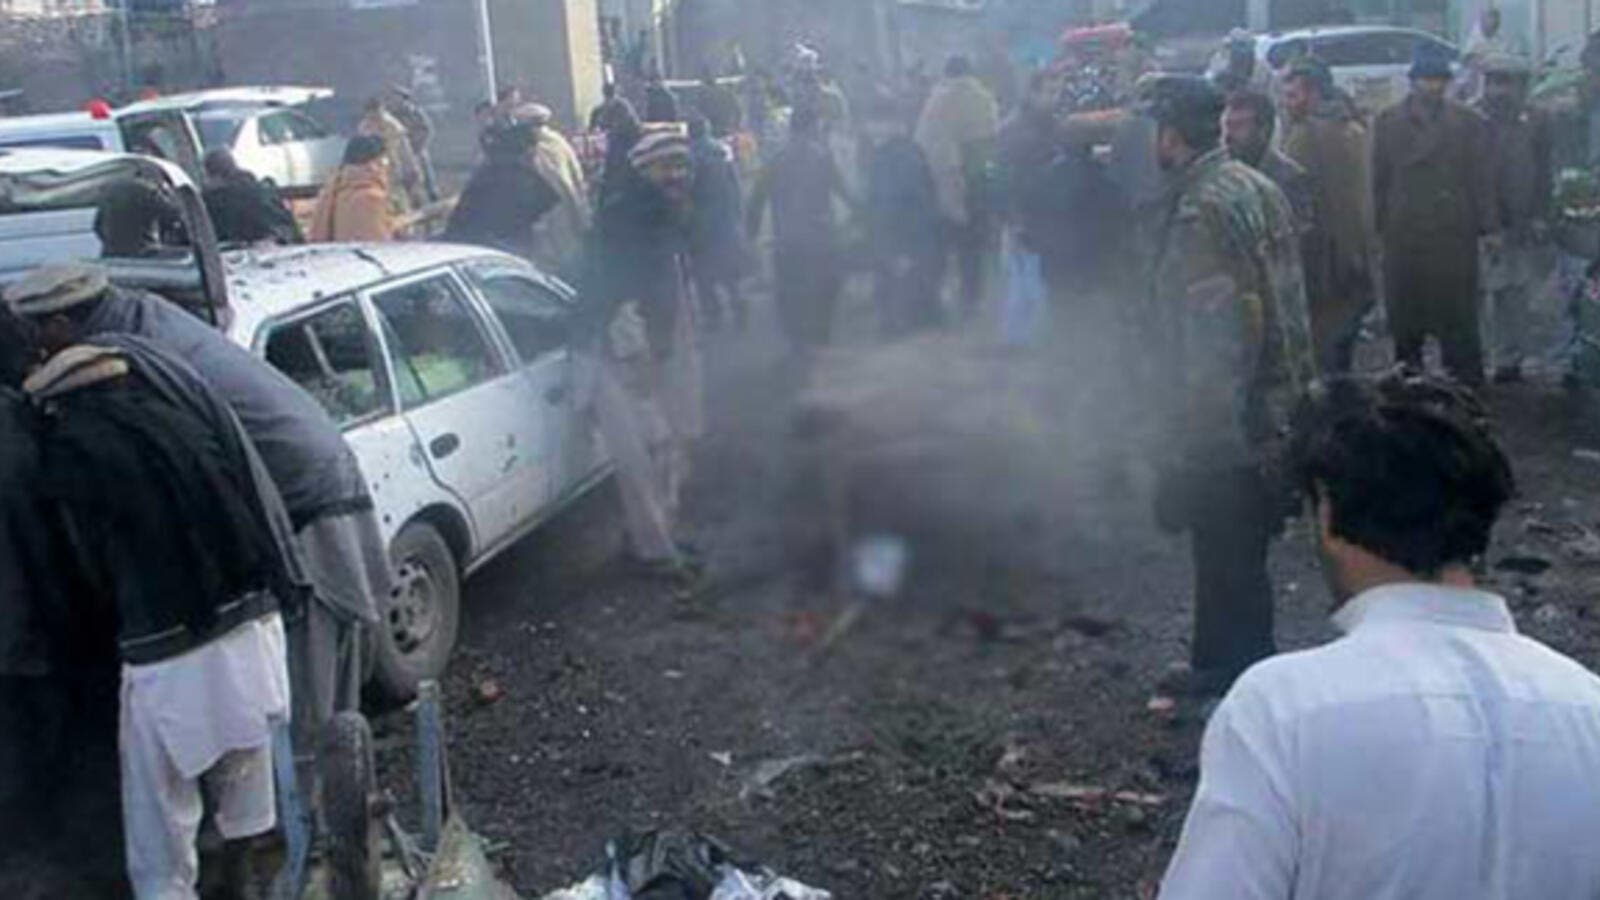 The explosion occurred in the Kurram Agency tribal region on the Afghan frontier. (File/Photo)